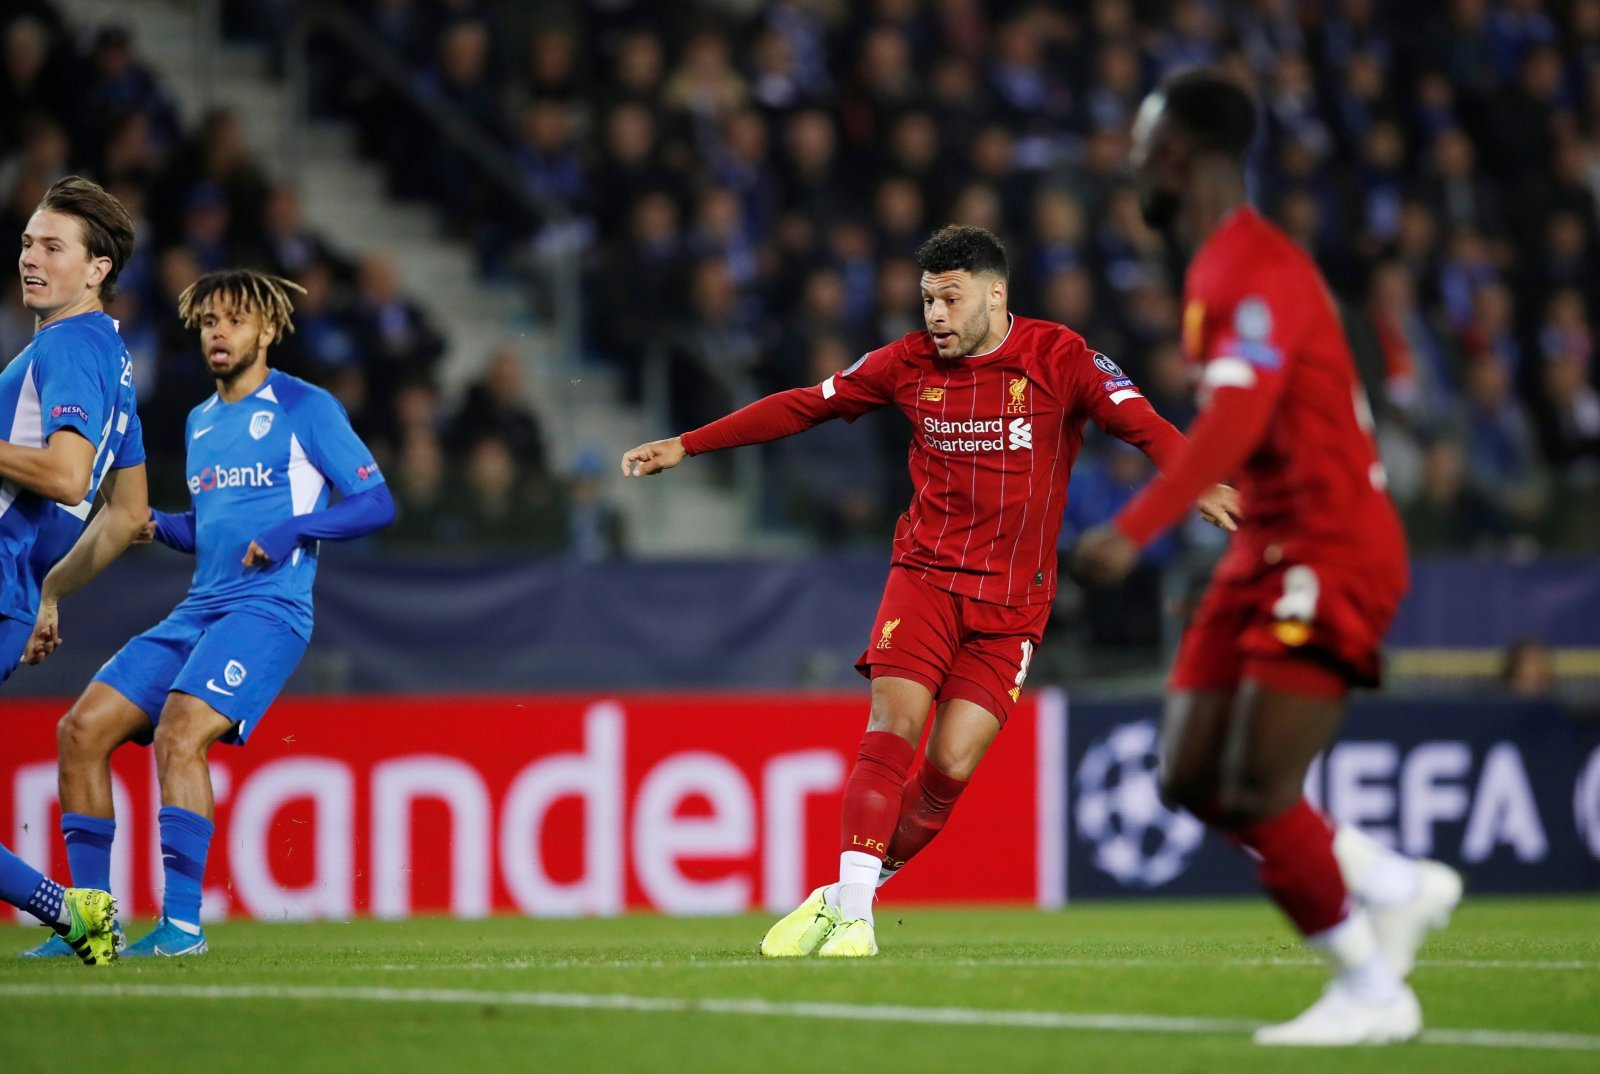 Liverpool: Fans love Oxlade-Chamberlain's return to form in Champions League goal-fest